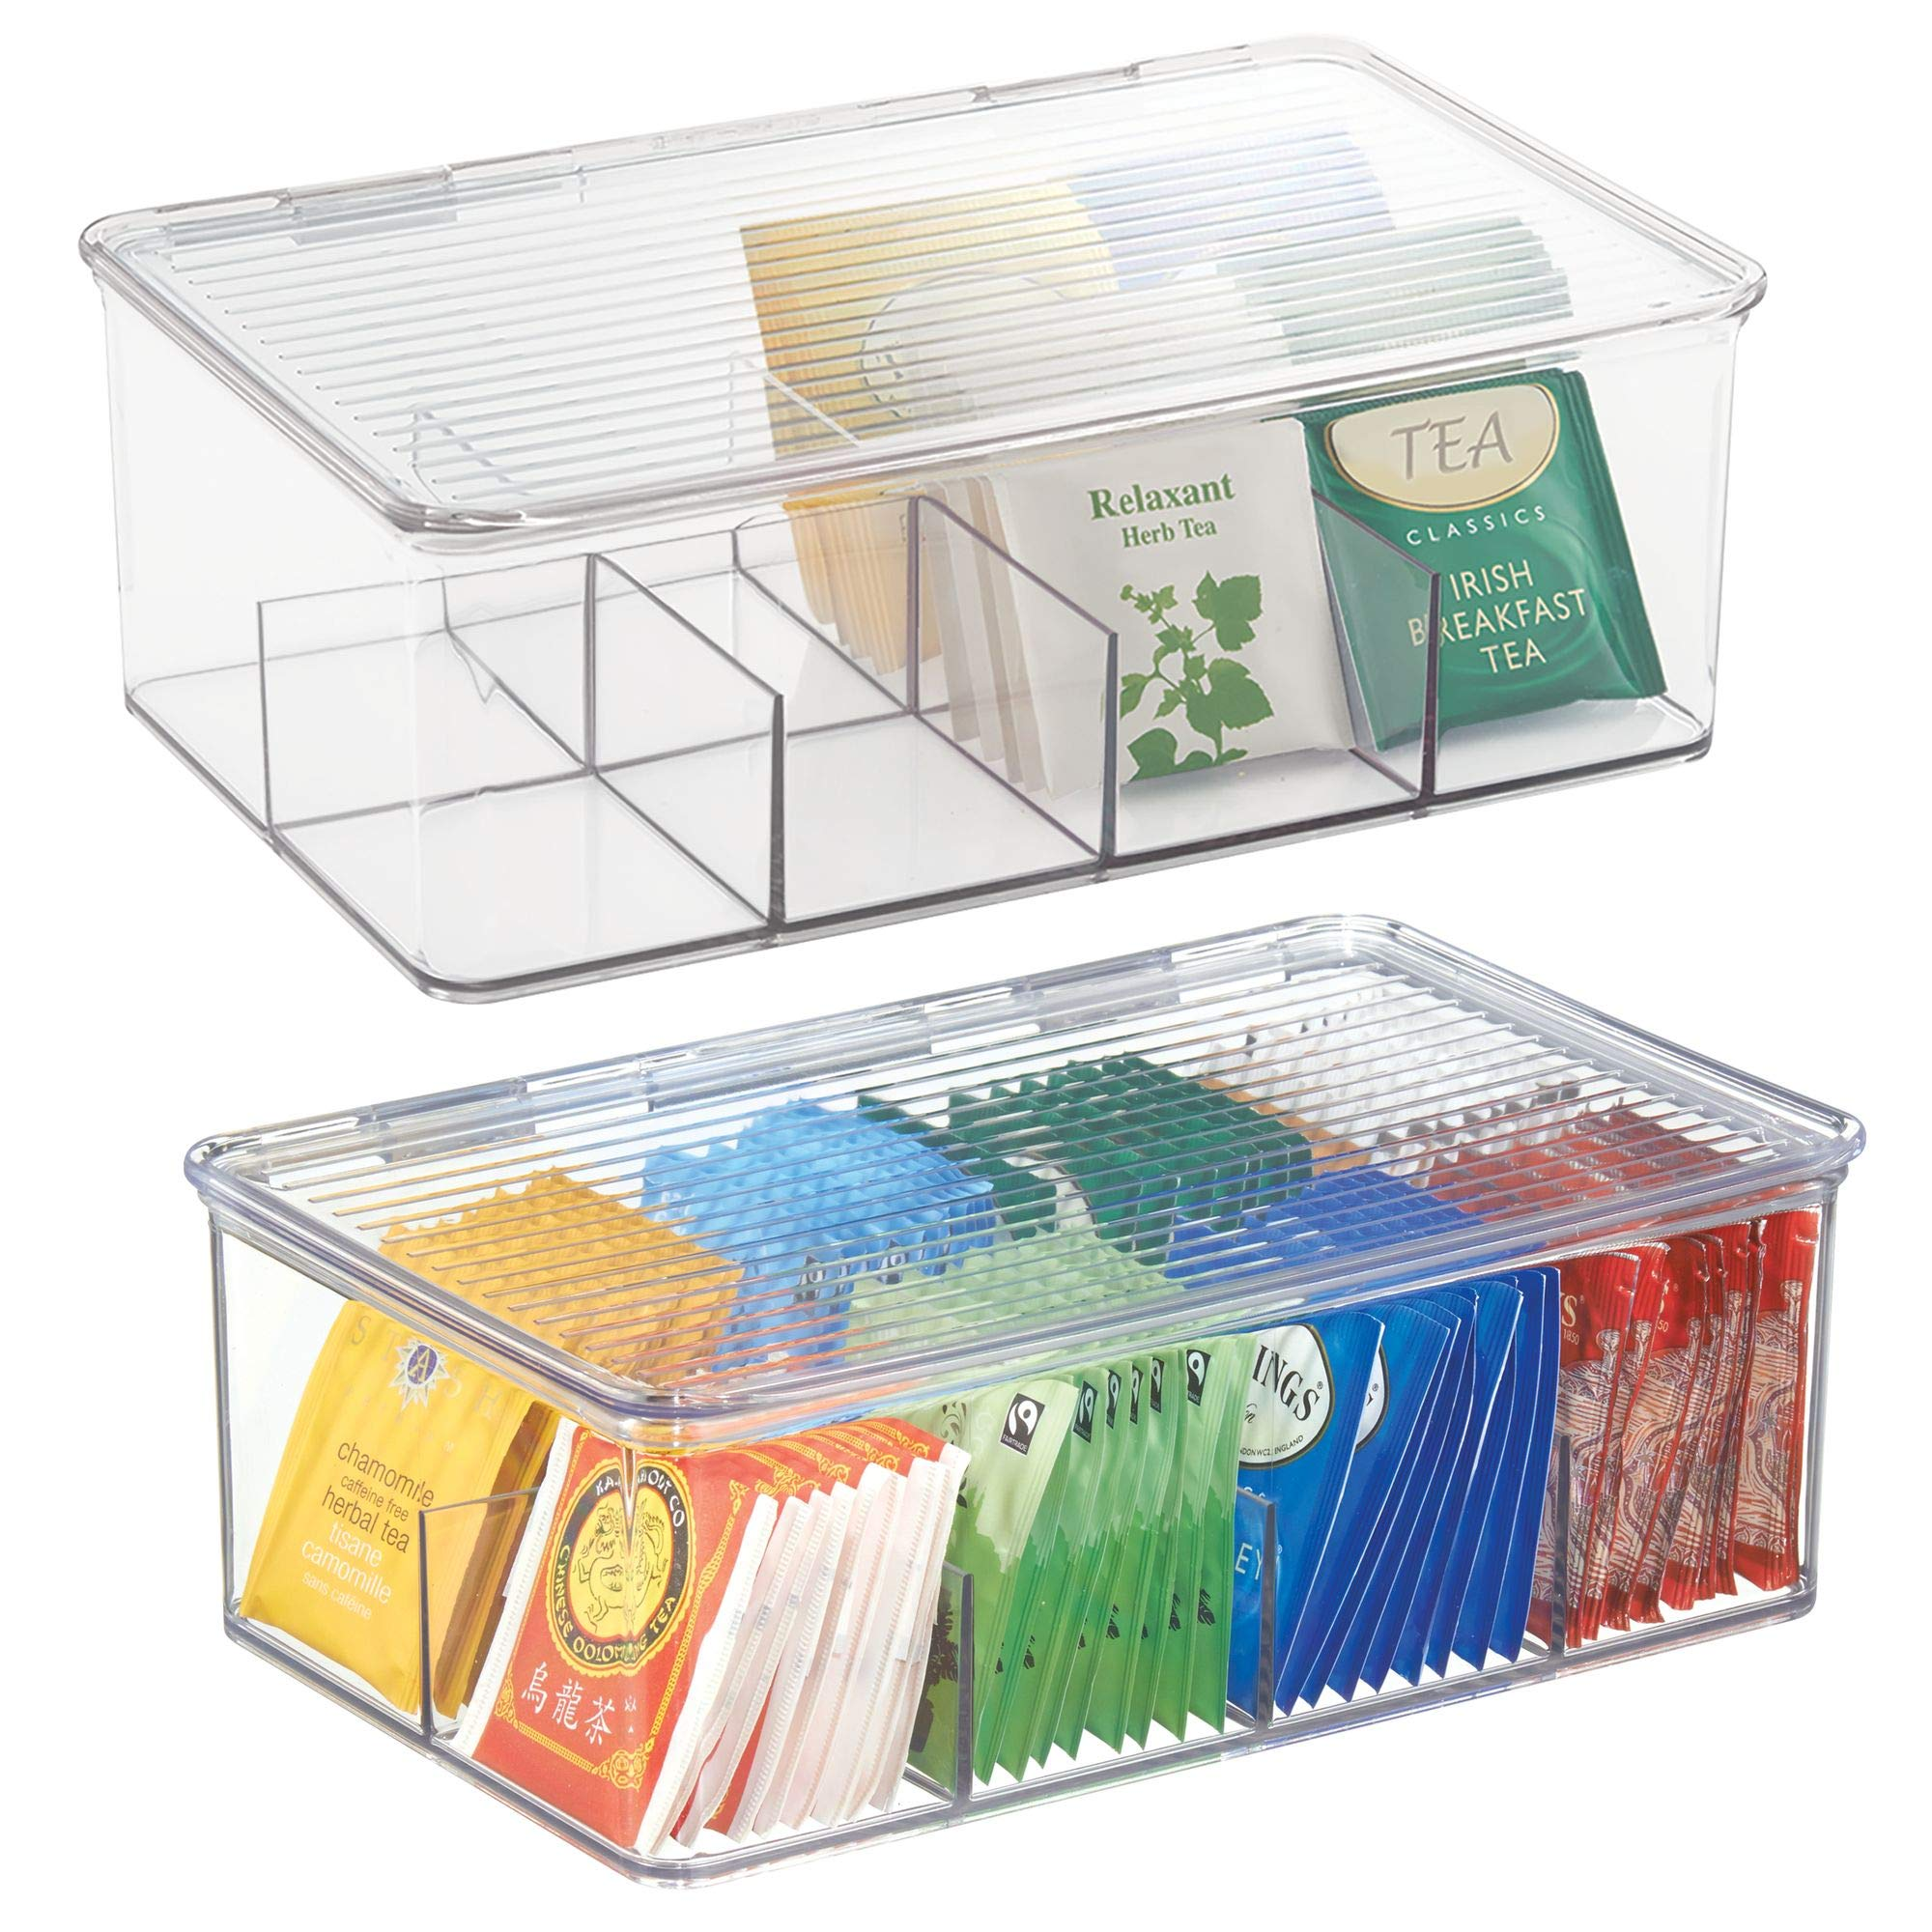 mDesign Stackable Plastic Tea Bag Organizer Storage Bin Box for Kitchen Cabinets, Countertops, Pantry - Hinged Lid - BPA Free, Food Safe - Holds Beverage Bags, Cups, Pods, Packets - Pack of 2, Clear